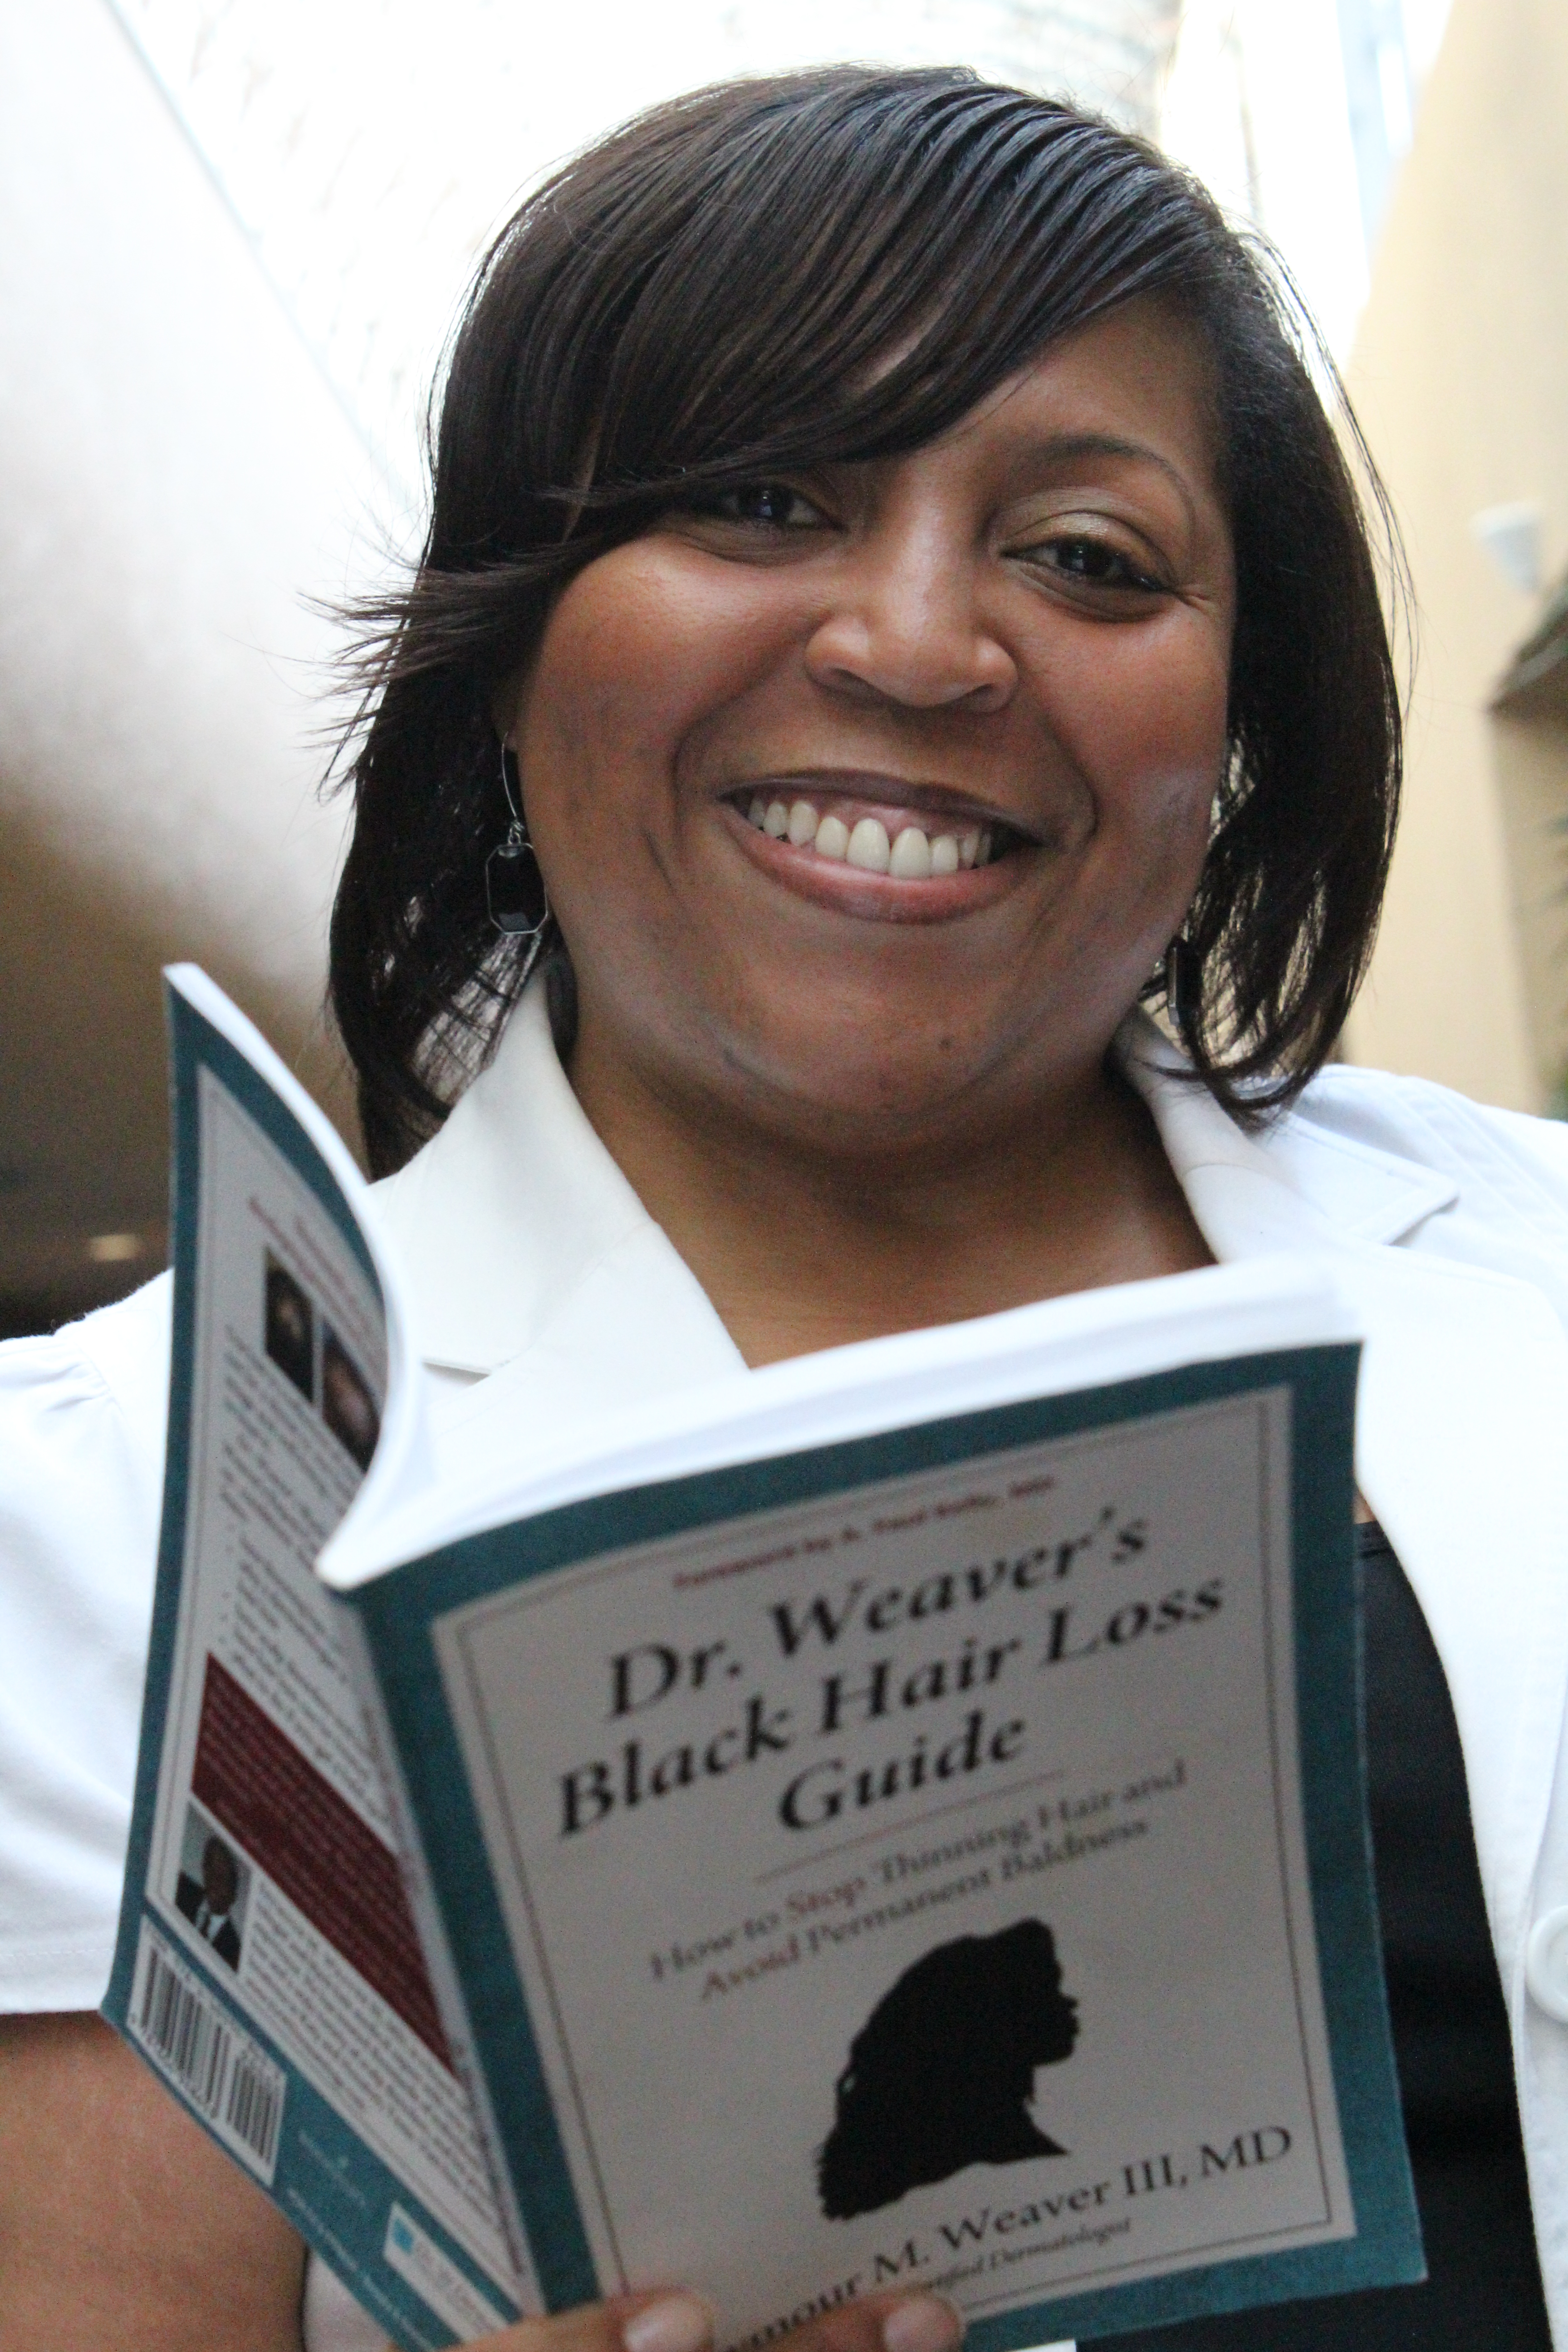 BLOG | Dr  Weaver's Black Hair Loss Guide